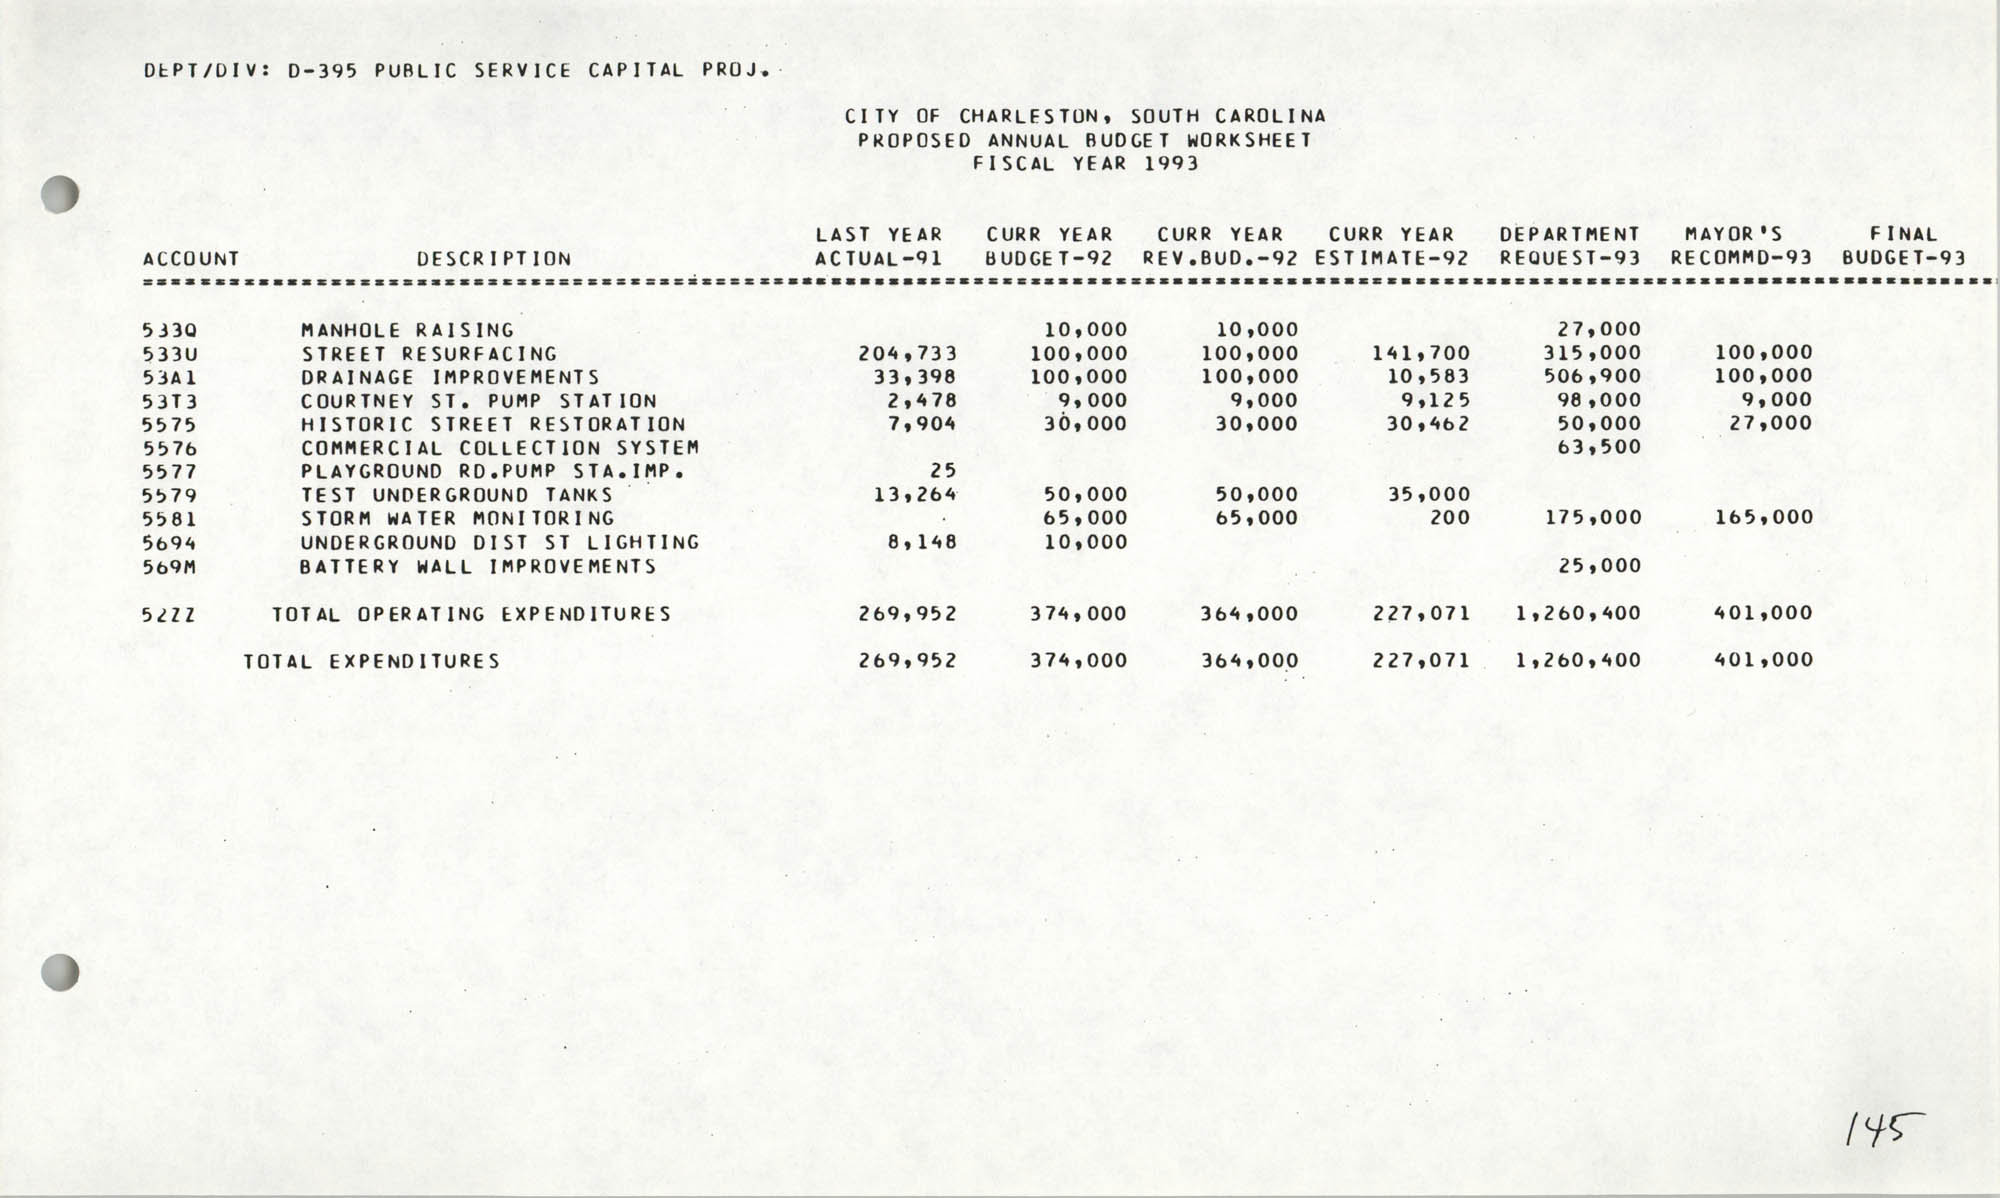 The City Council of Charleston, South Carolina, 1993 Budget, Page 145